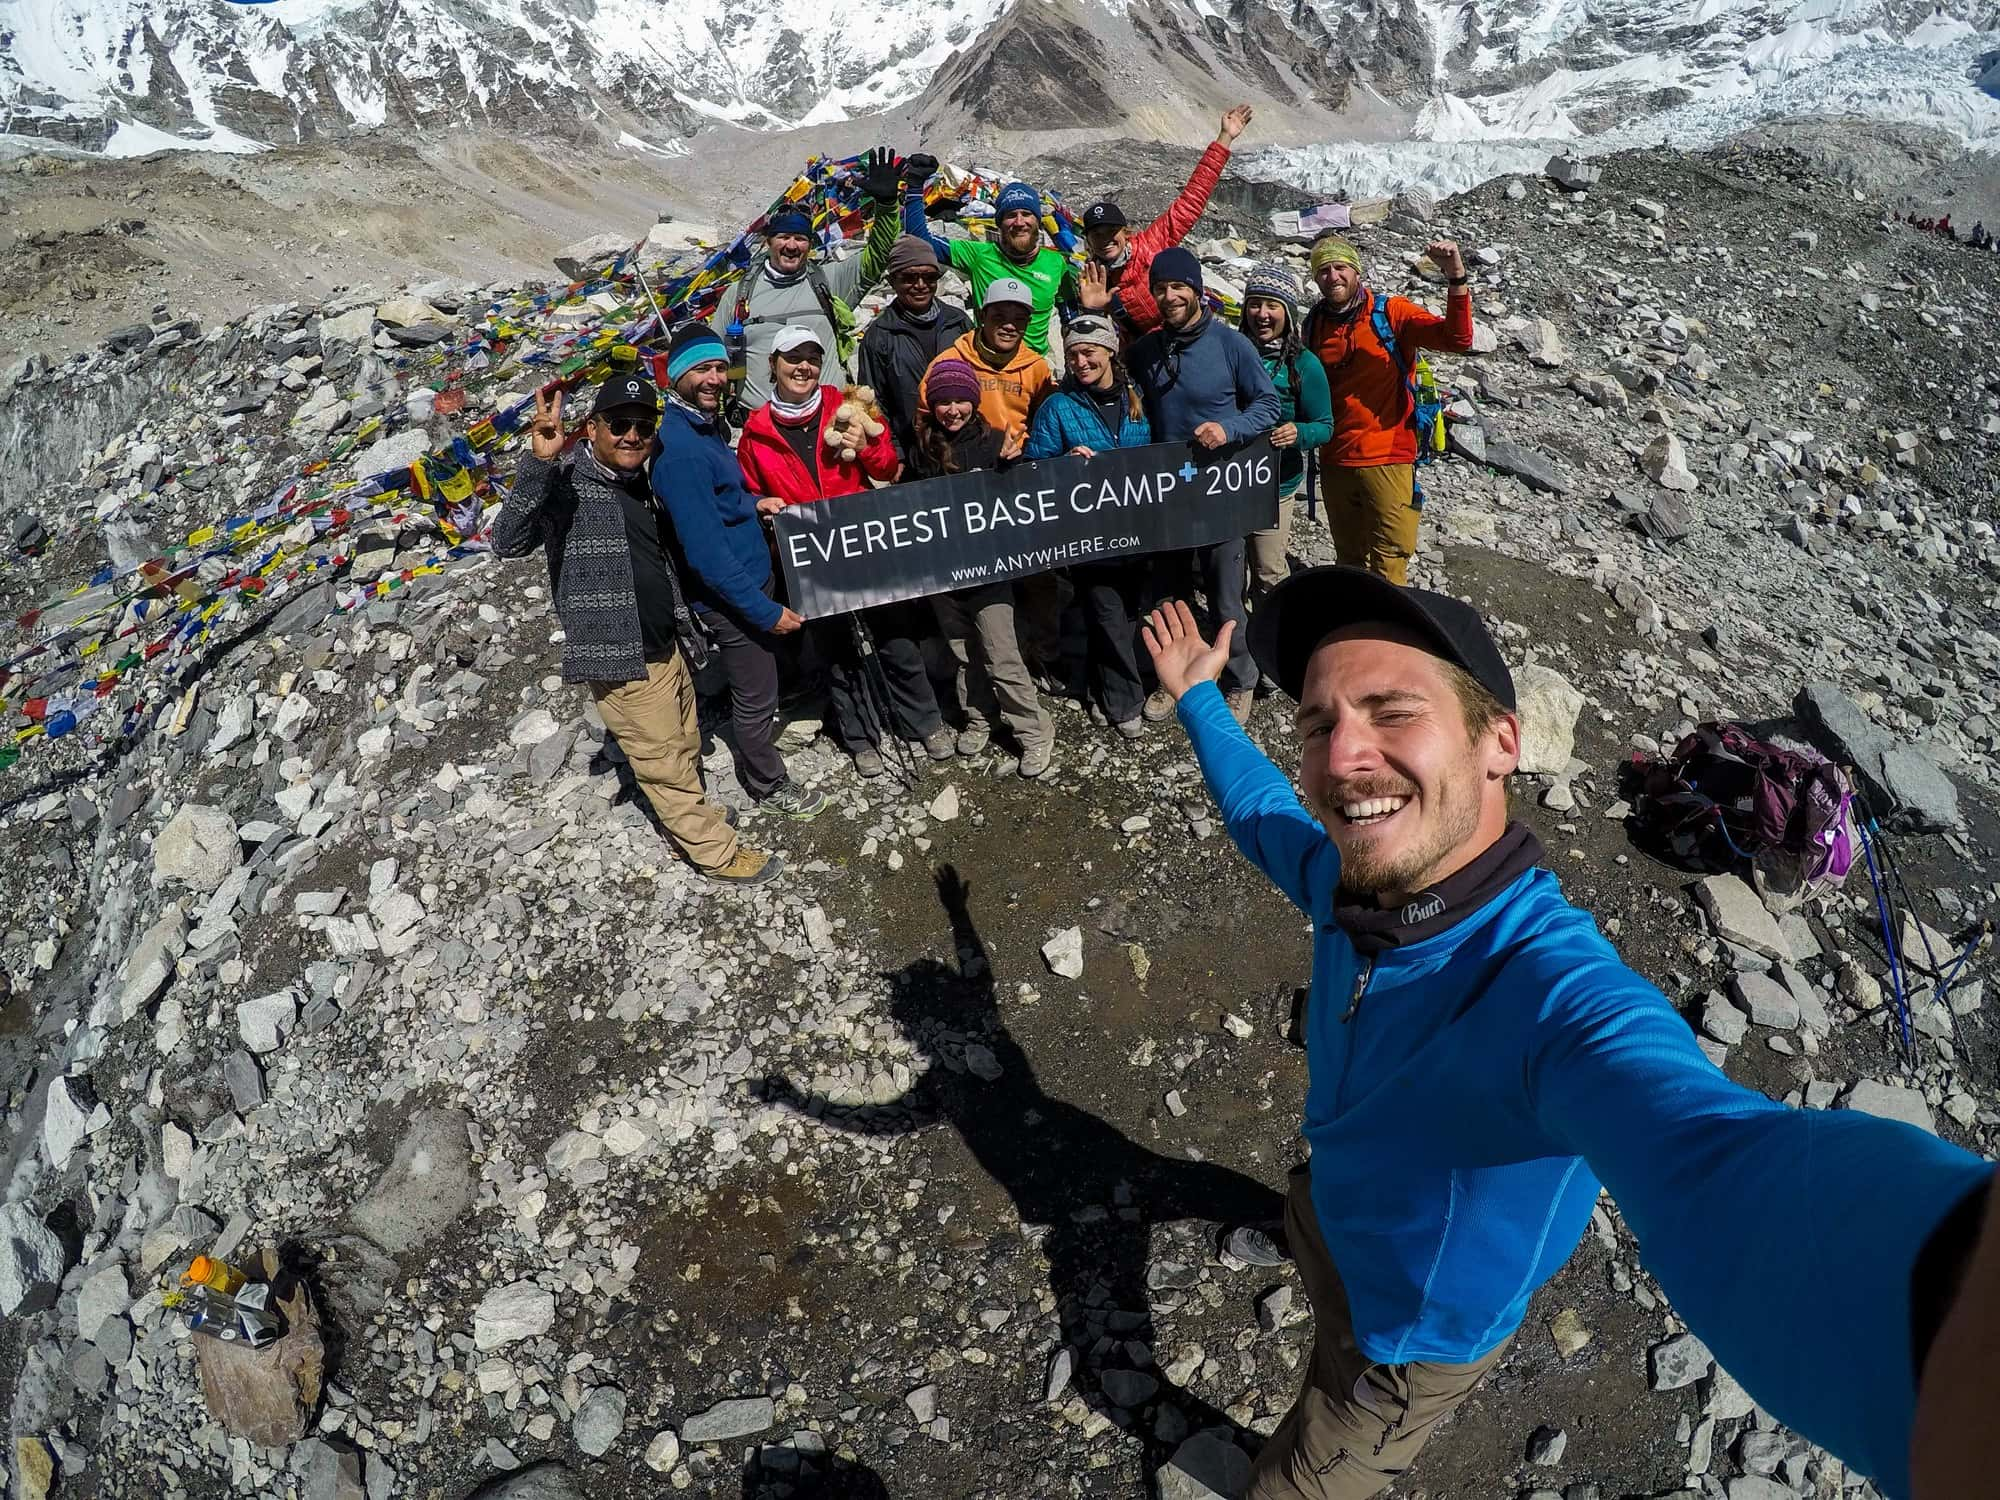 Kristen's Everest Base Camp Trek group // Learn how to increase your lung capacity for hiking so you can hike higher & farther without running out of breath, even at high elevation.